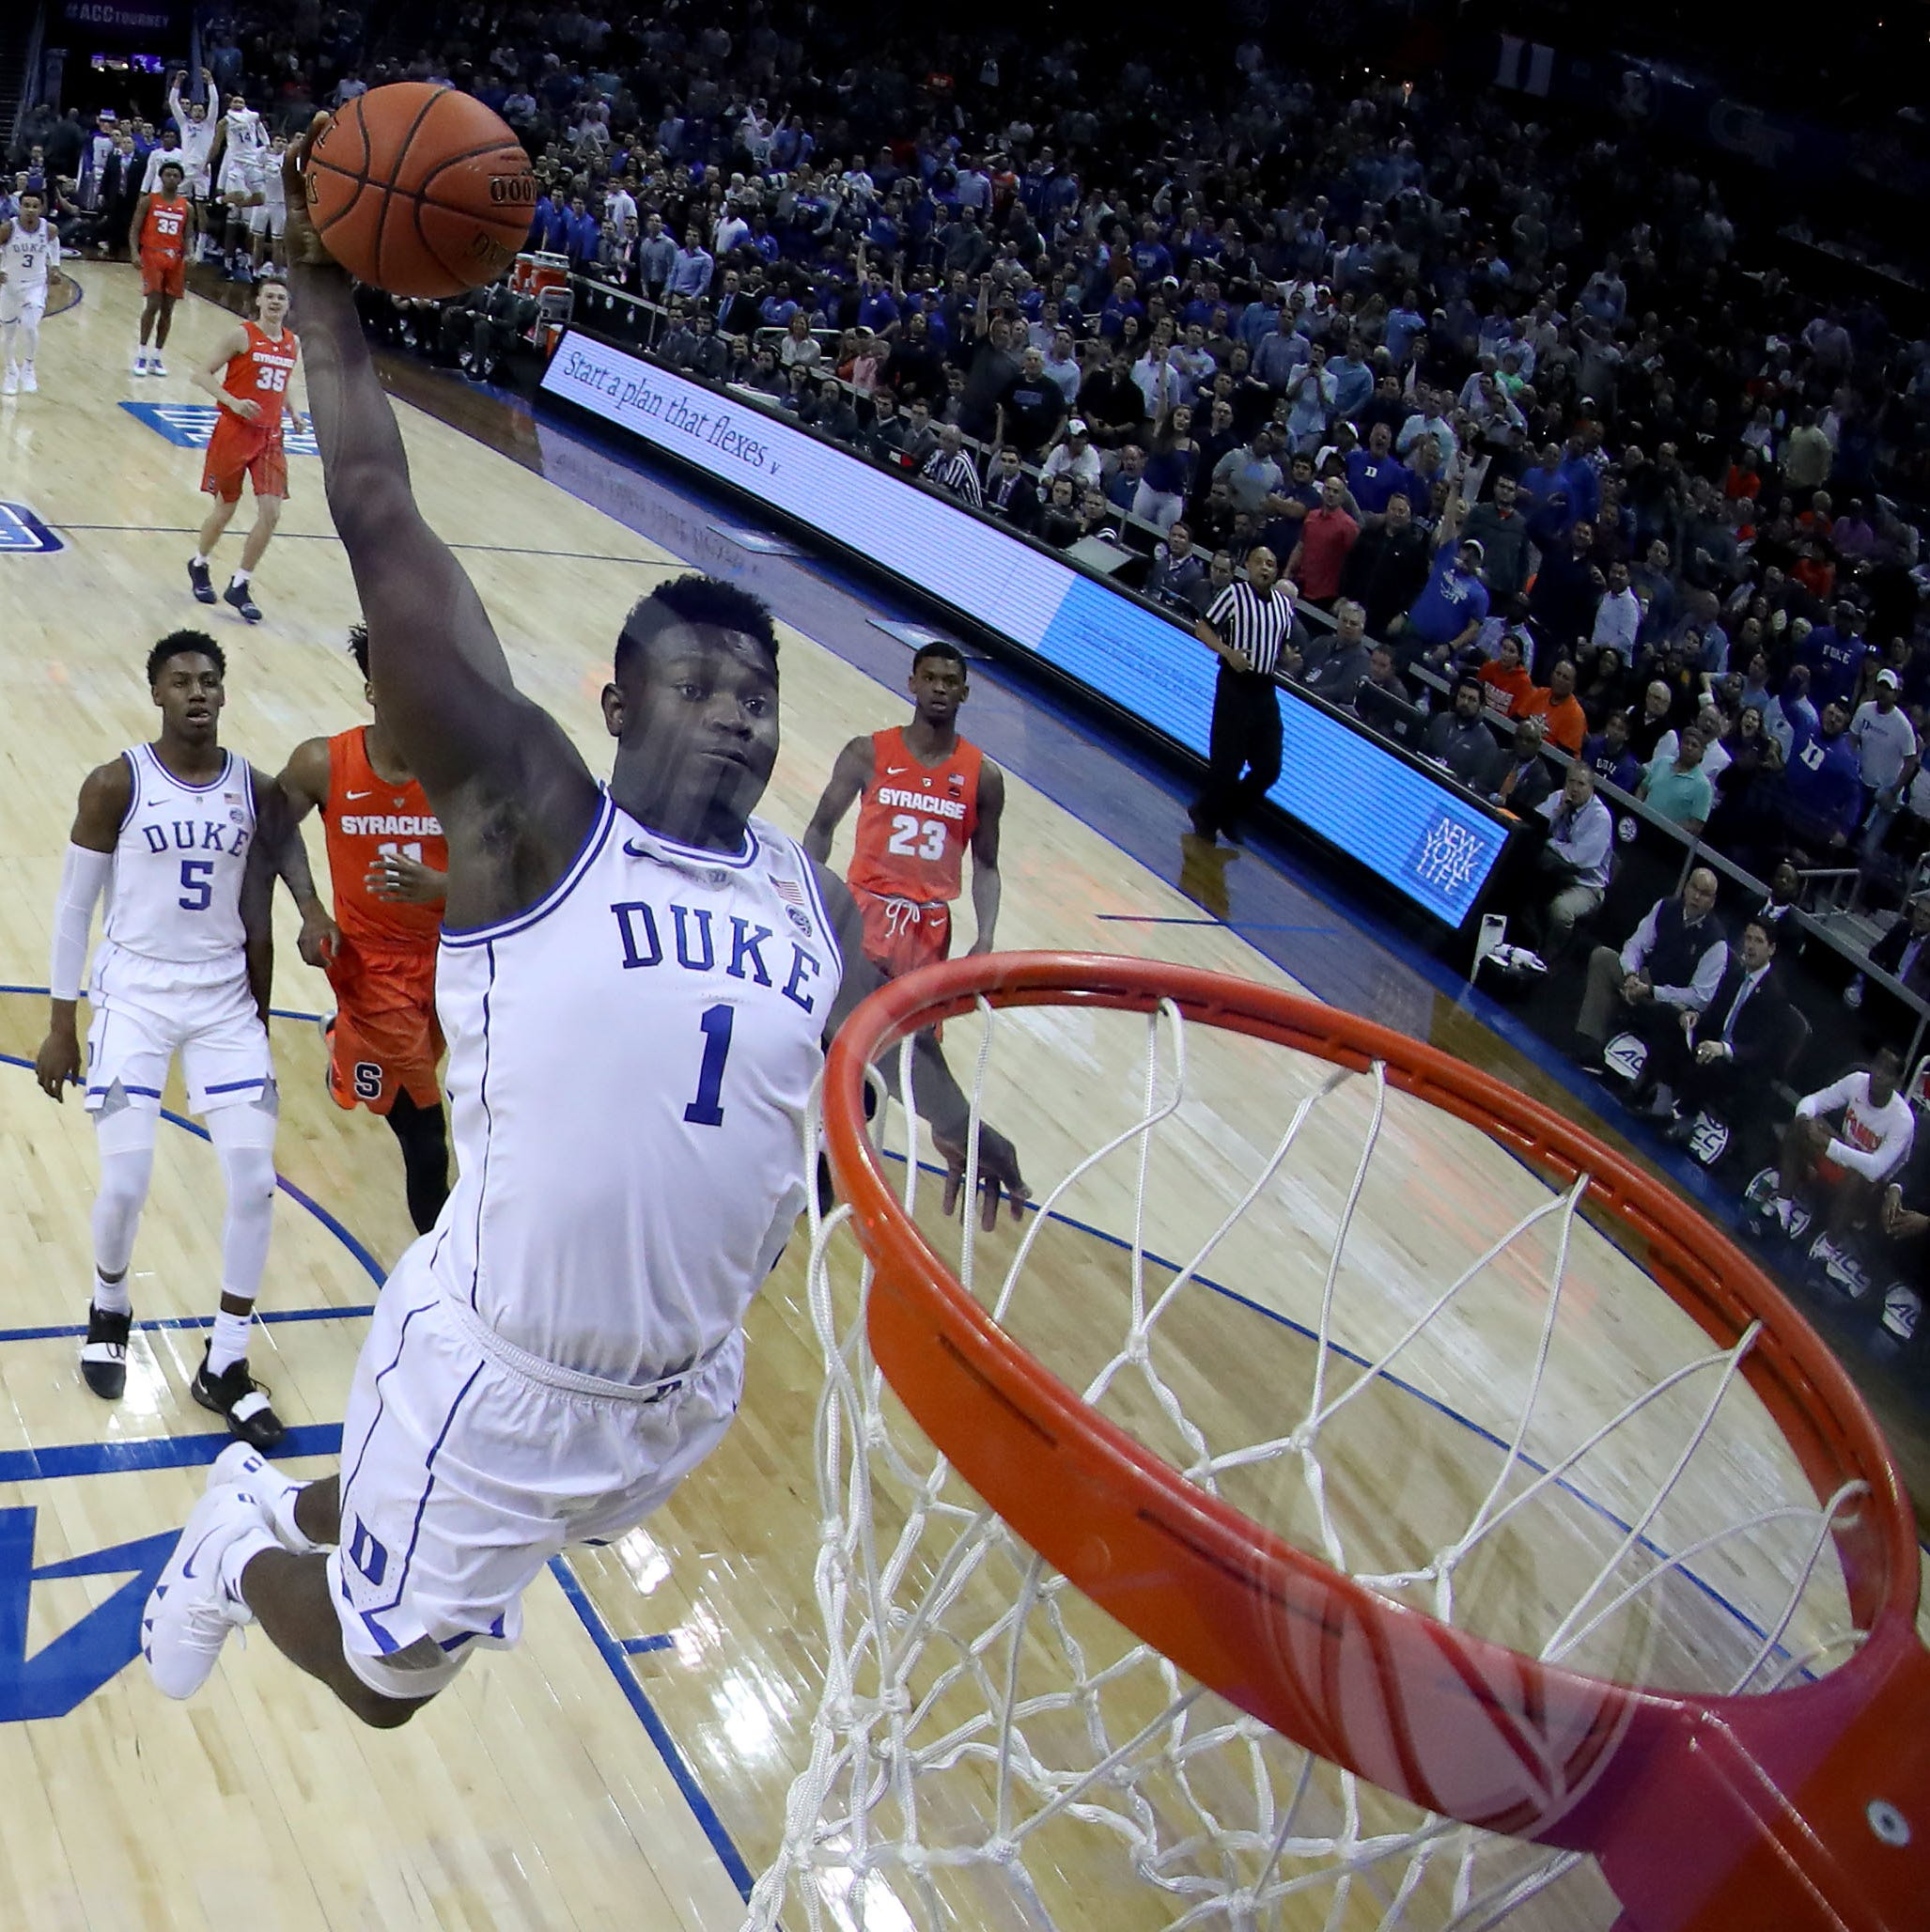 Zion Williamson dunks the ball in the ACC tournament quarterfinal game against Syracuse at Spectrum Center in Charlotte.